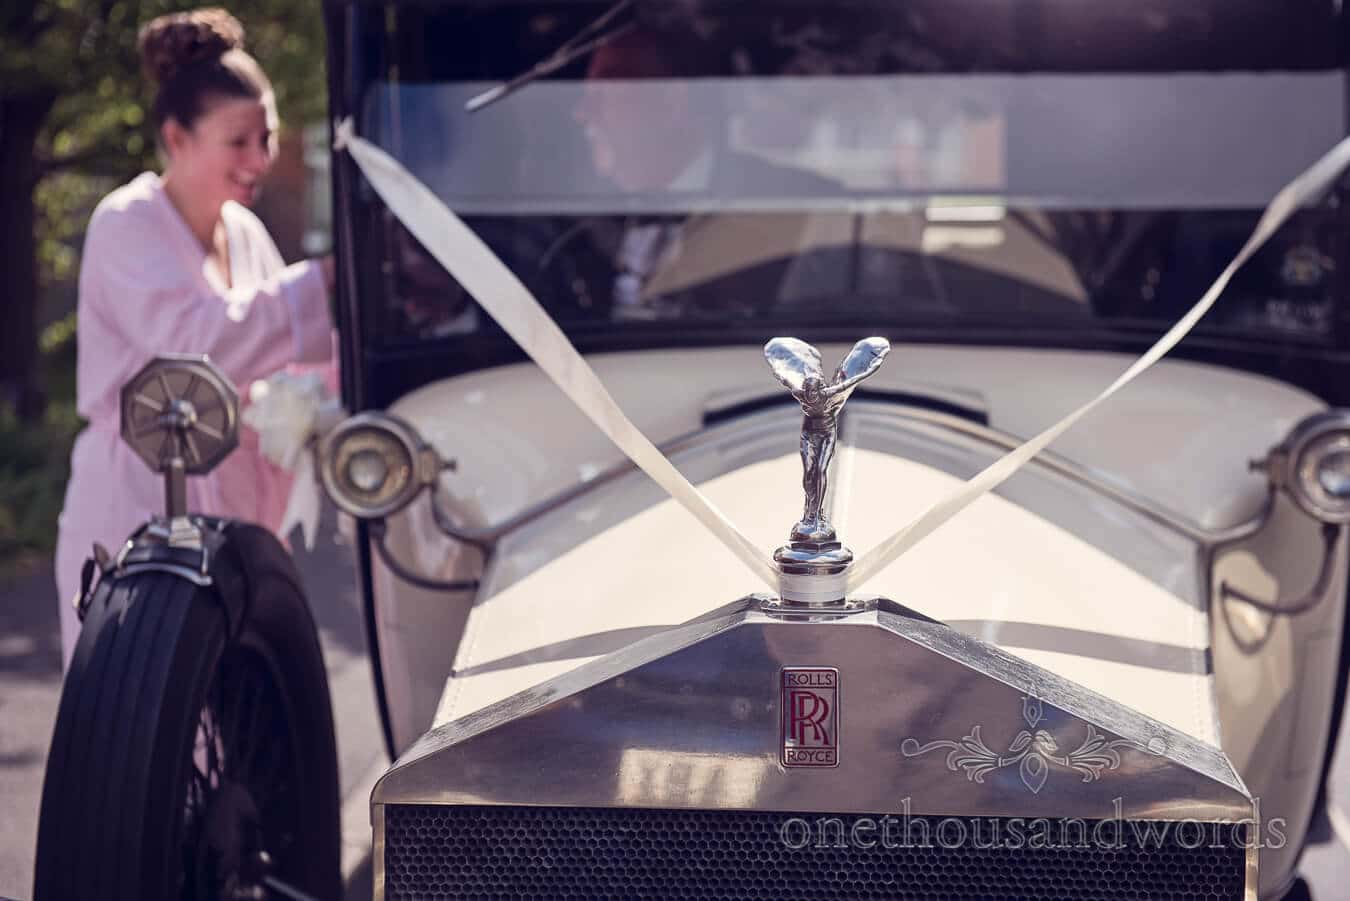 Rolls Royce wedding car on wedding morning